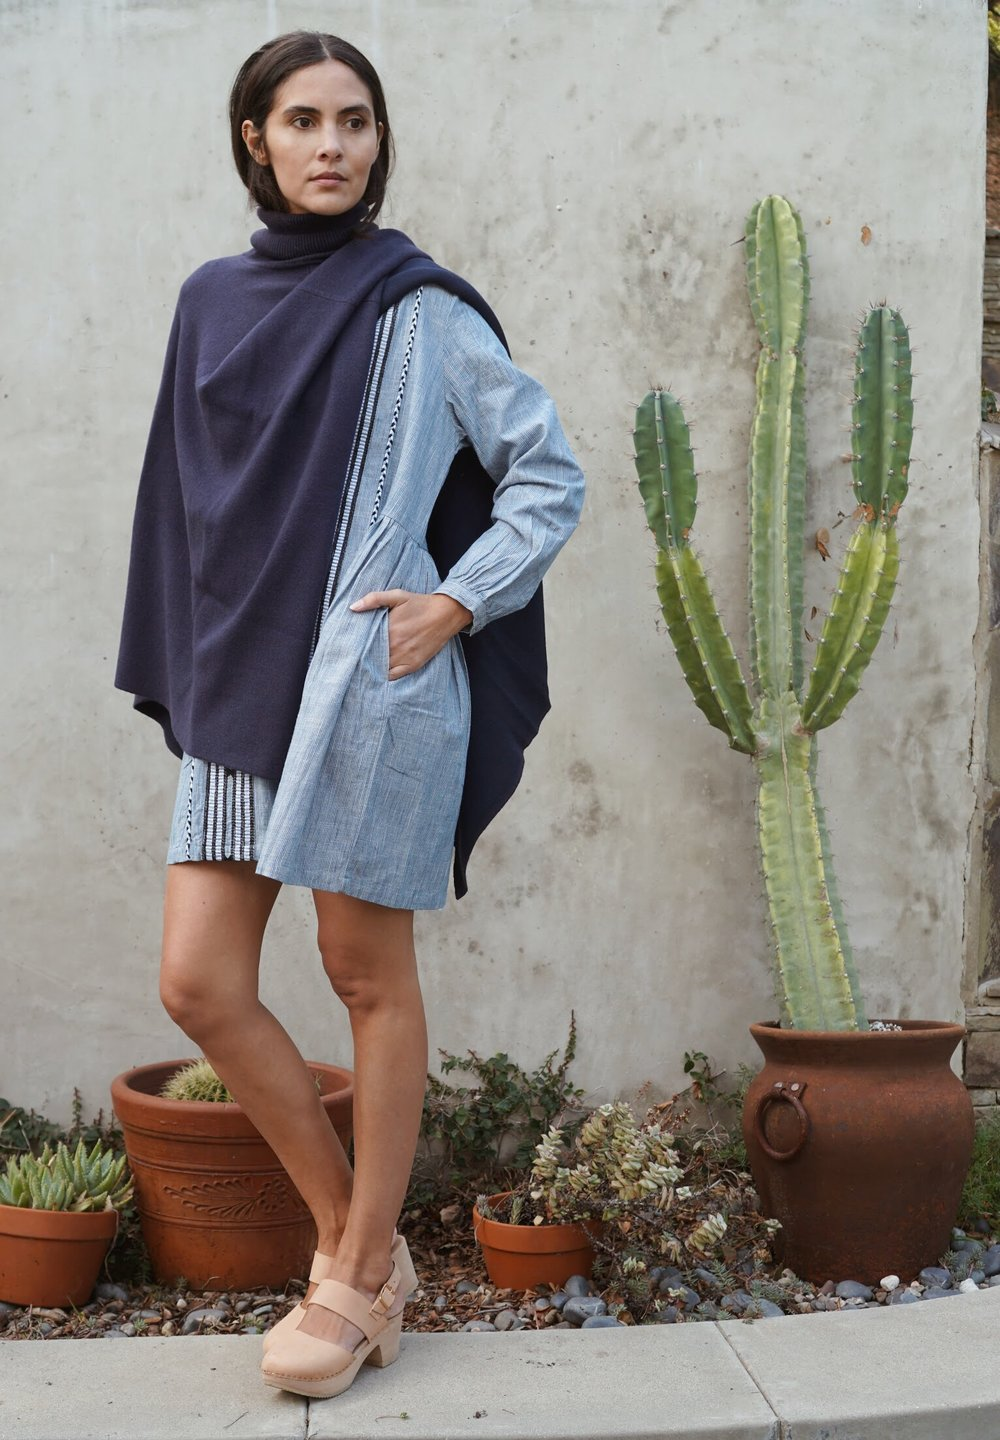 Kopal  Riya Dress in Indigo Stripe +  Maiyet  Double Knit Cape in Navy +   Zuzii   Closed Toe Clogs in Natural.